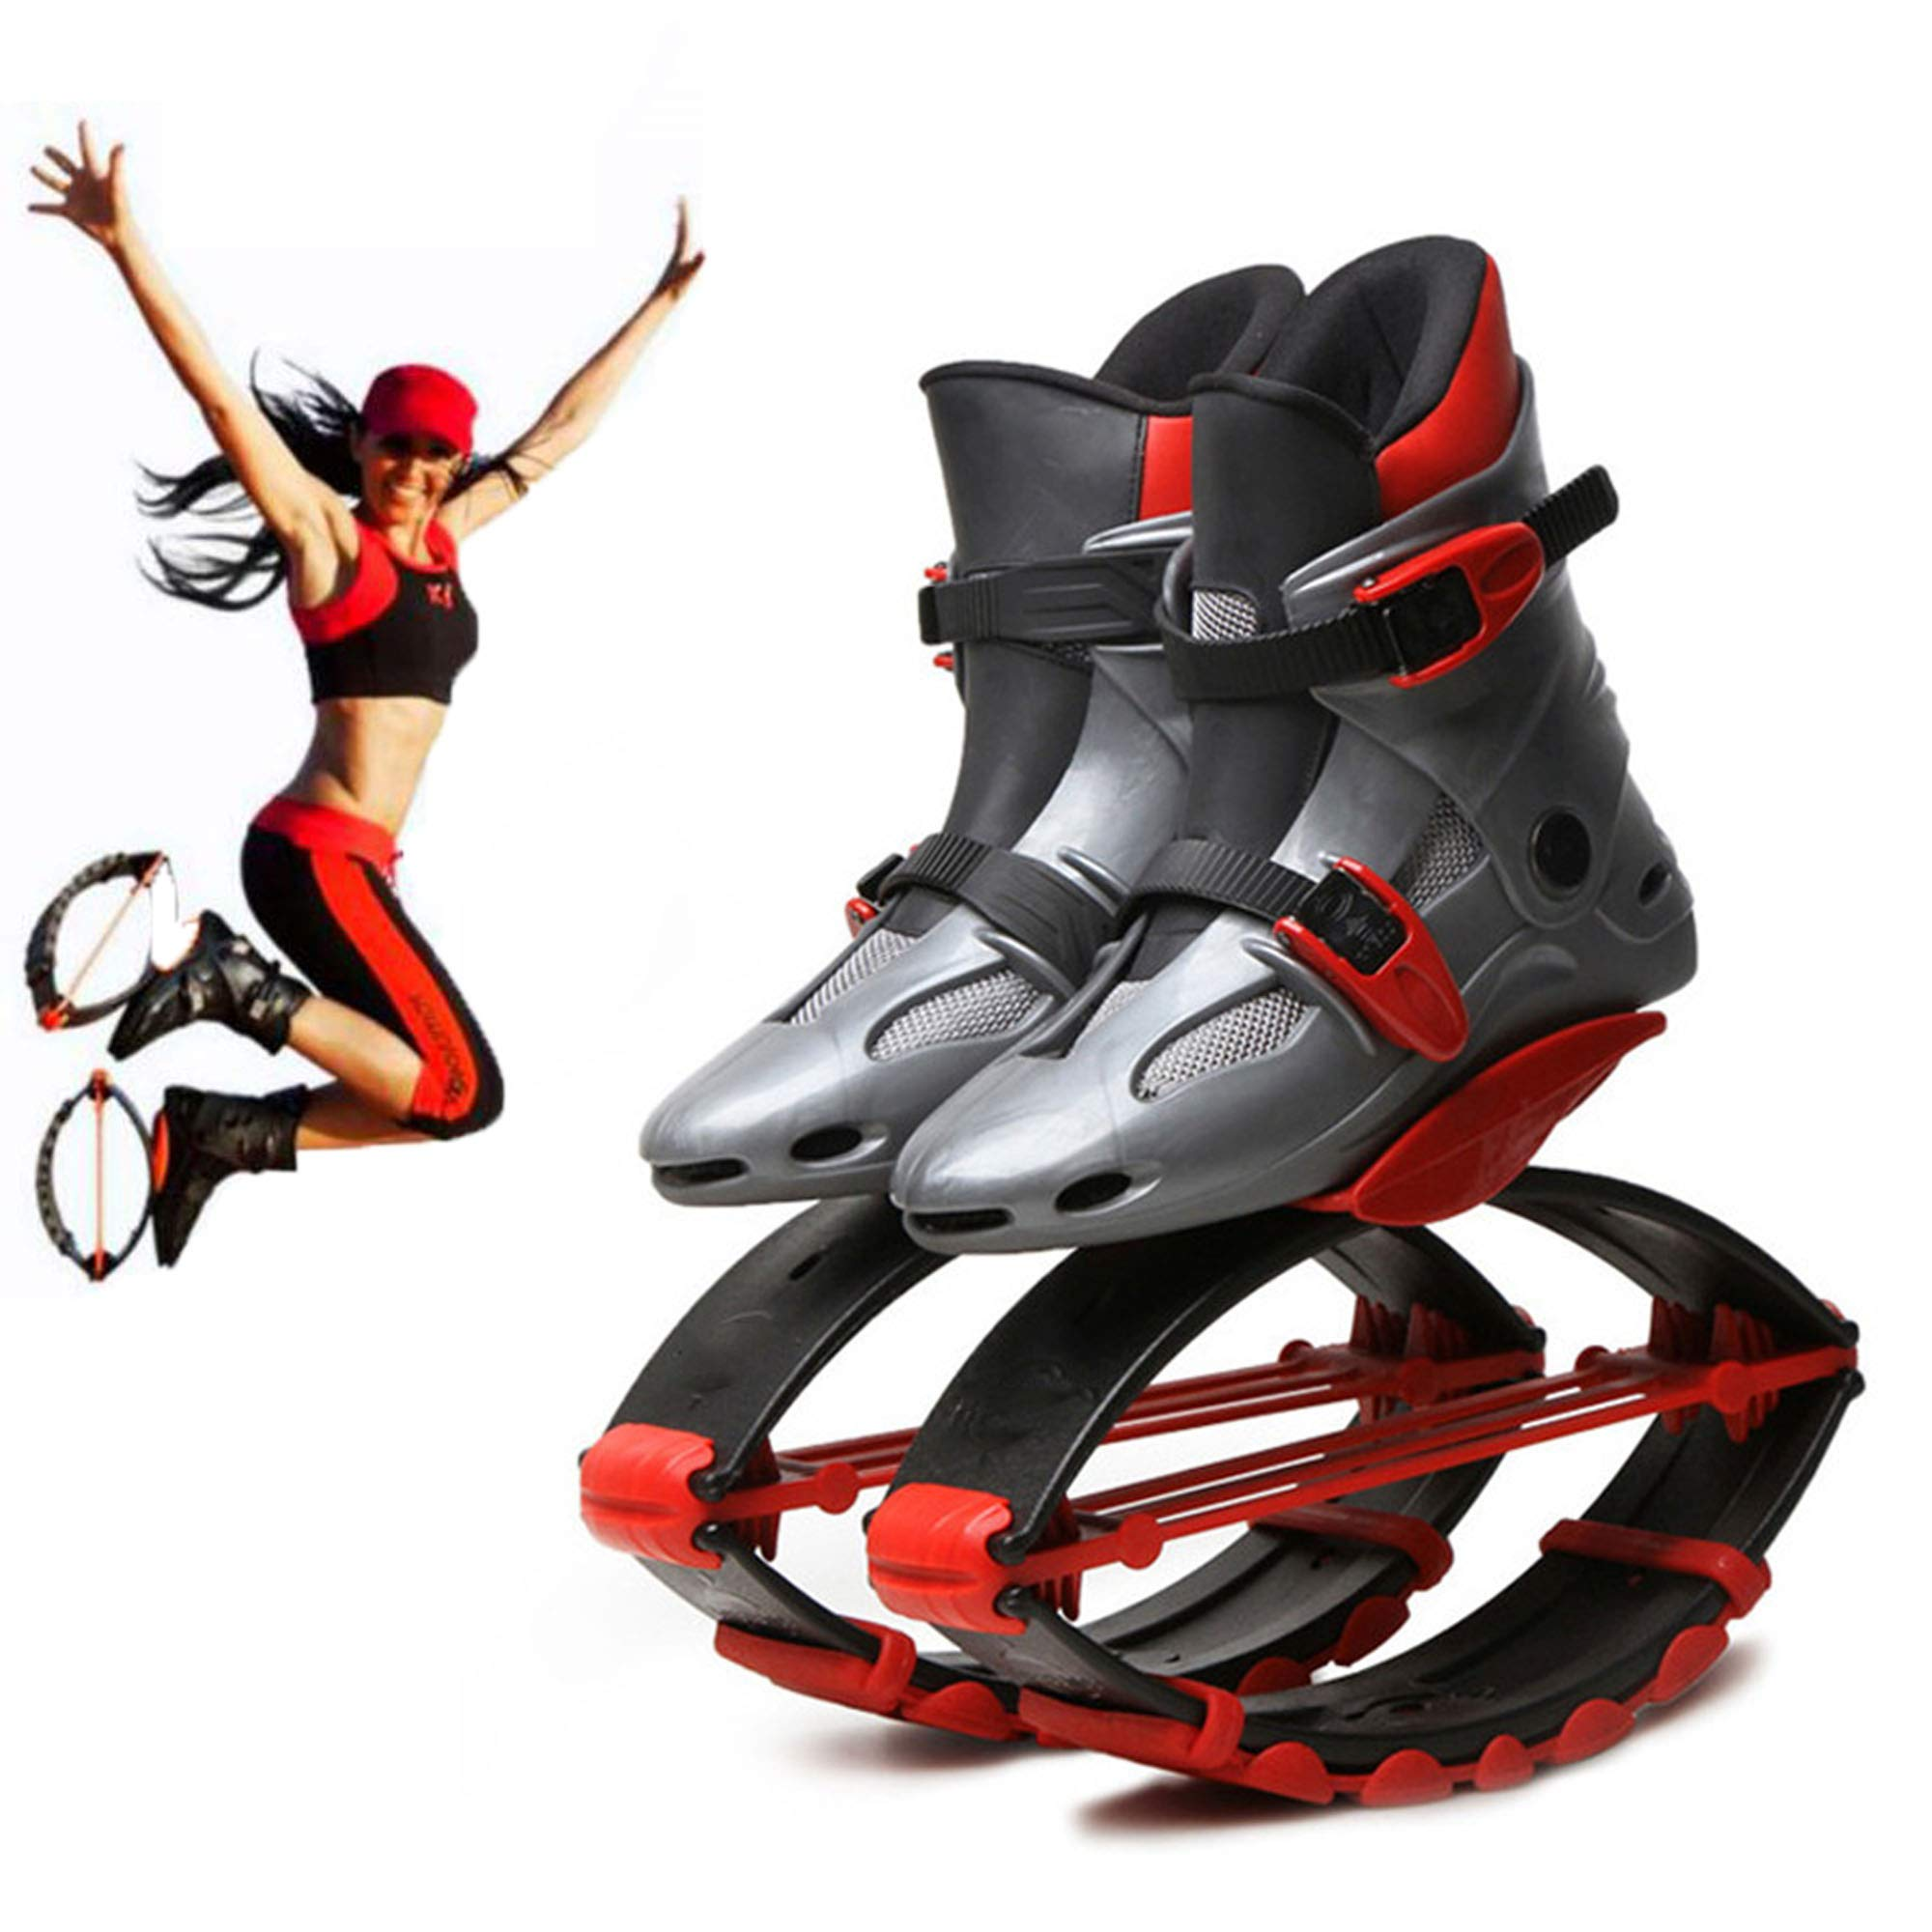 Jump Shoes Bounce Anti-Gravity Fitness Jumping Shoes Unisex Children Adult Running Boots,M by H&M Bouncing shoes (Image #1)